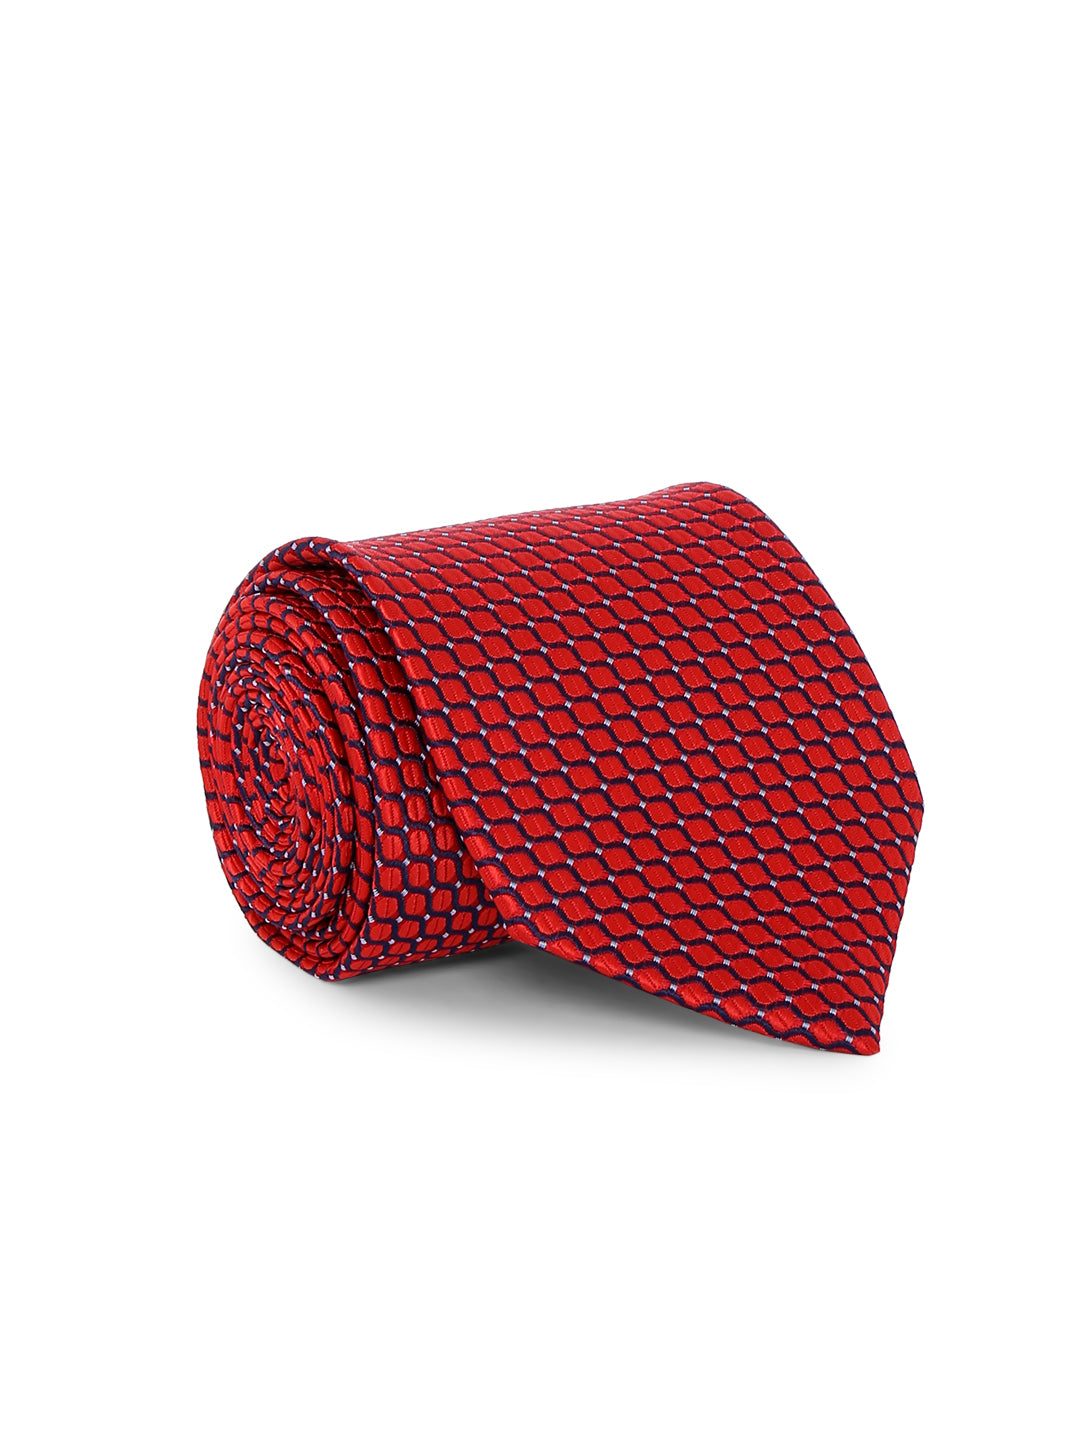 Zido Tie for Men TJQ241